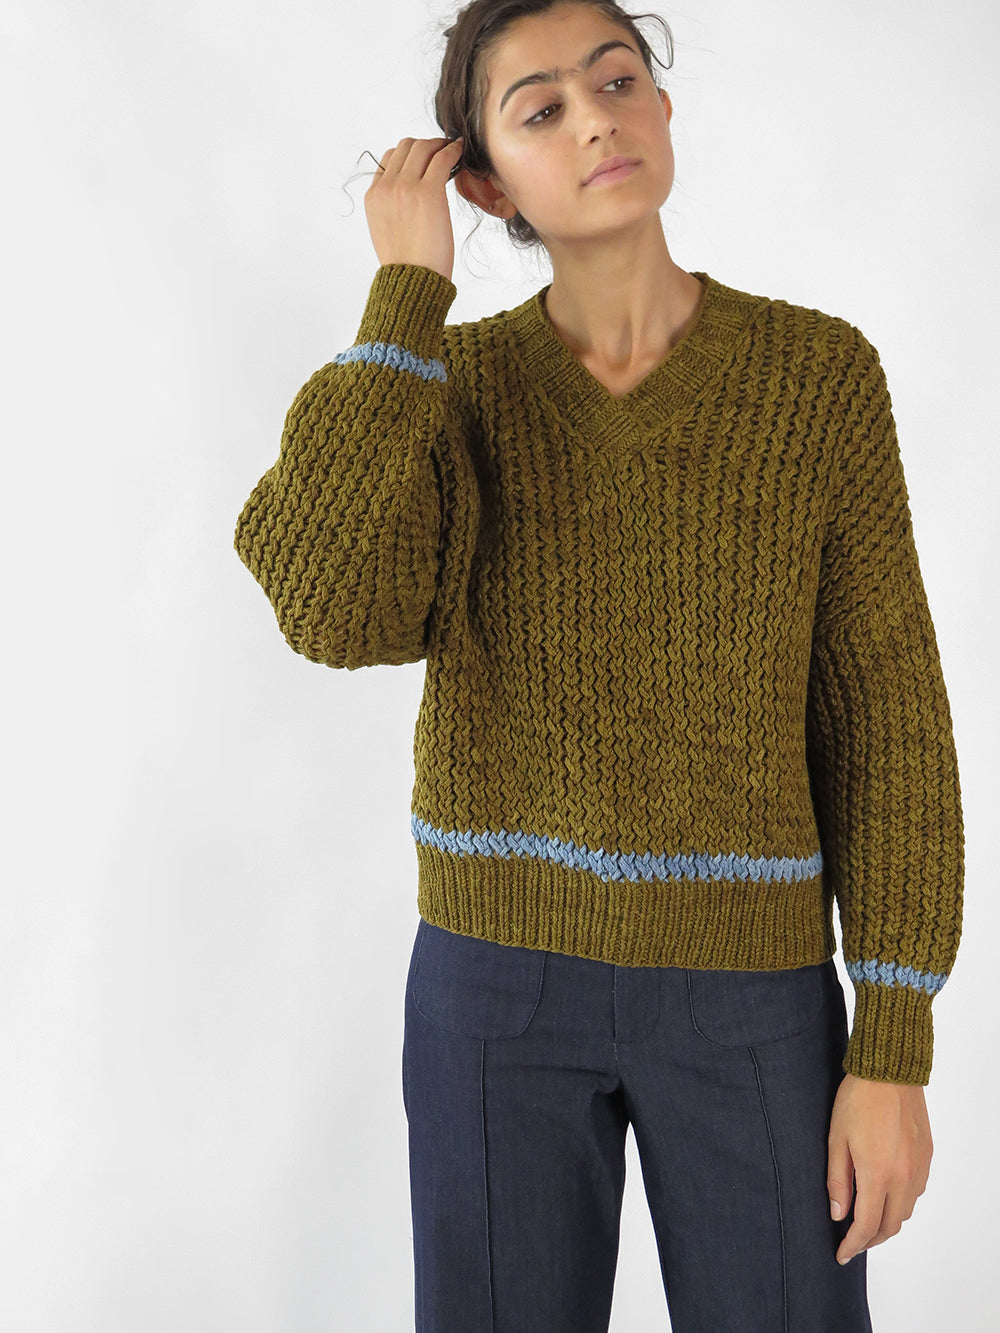 knitbrary v-neck sweater in carpatain + blue cotton